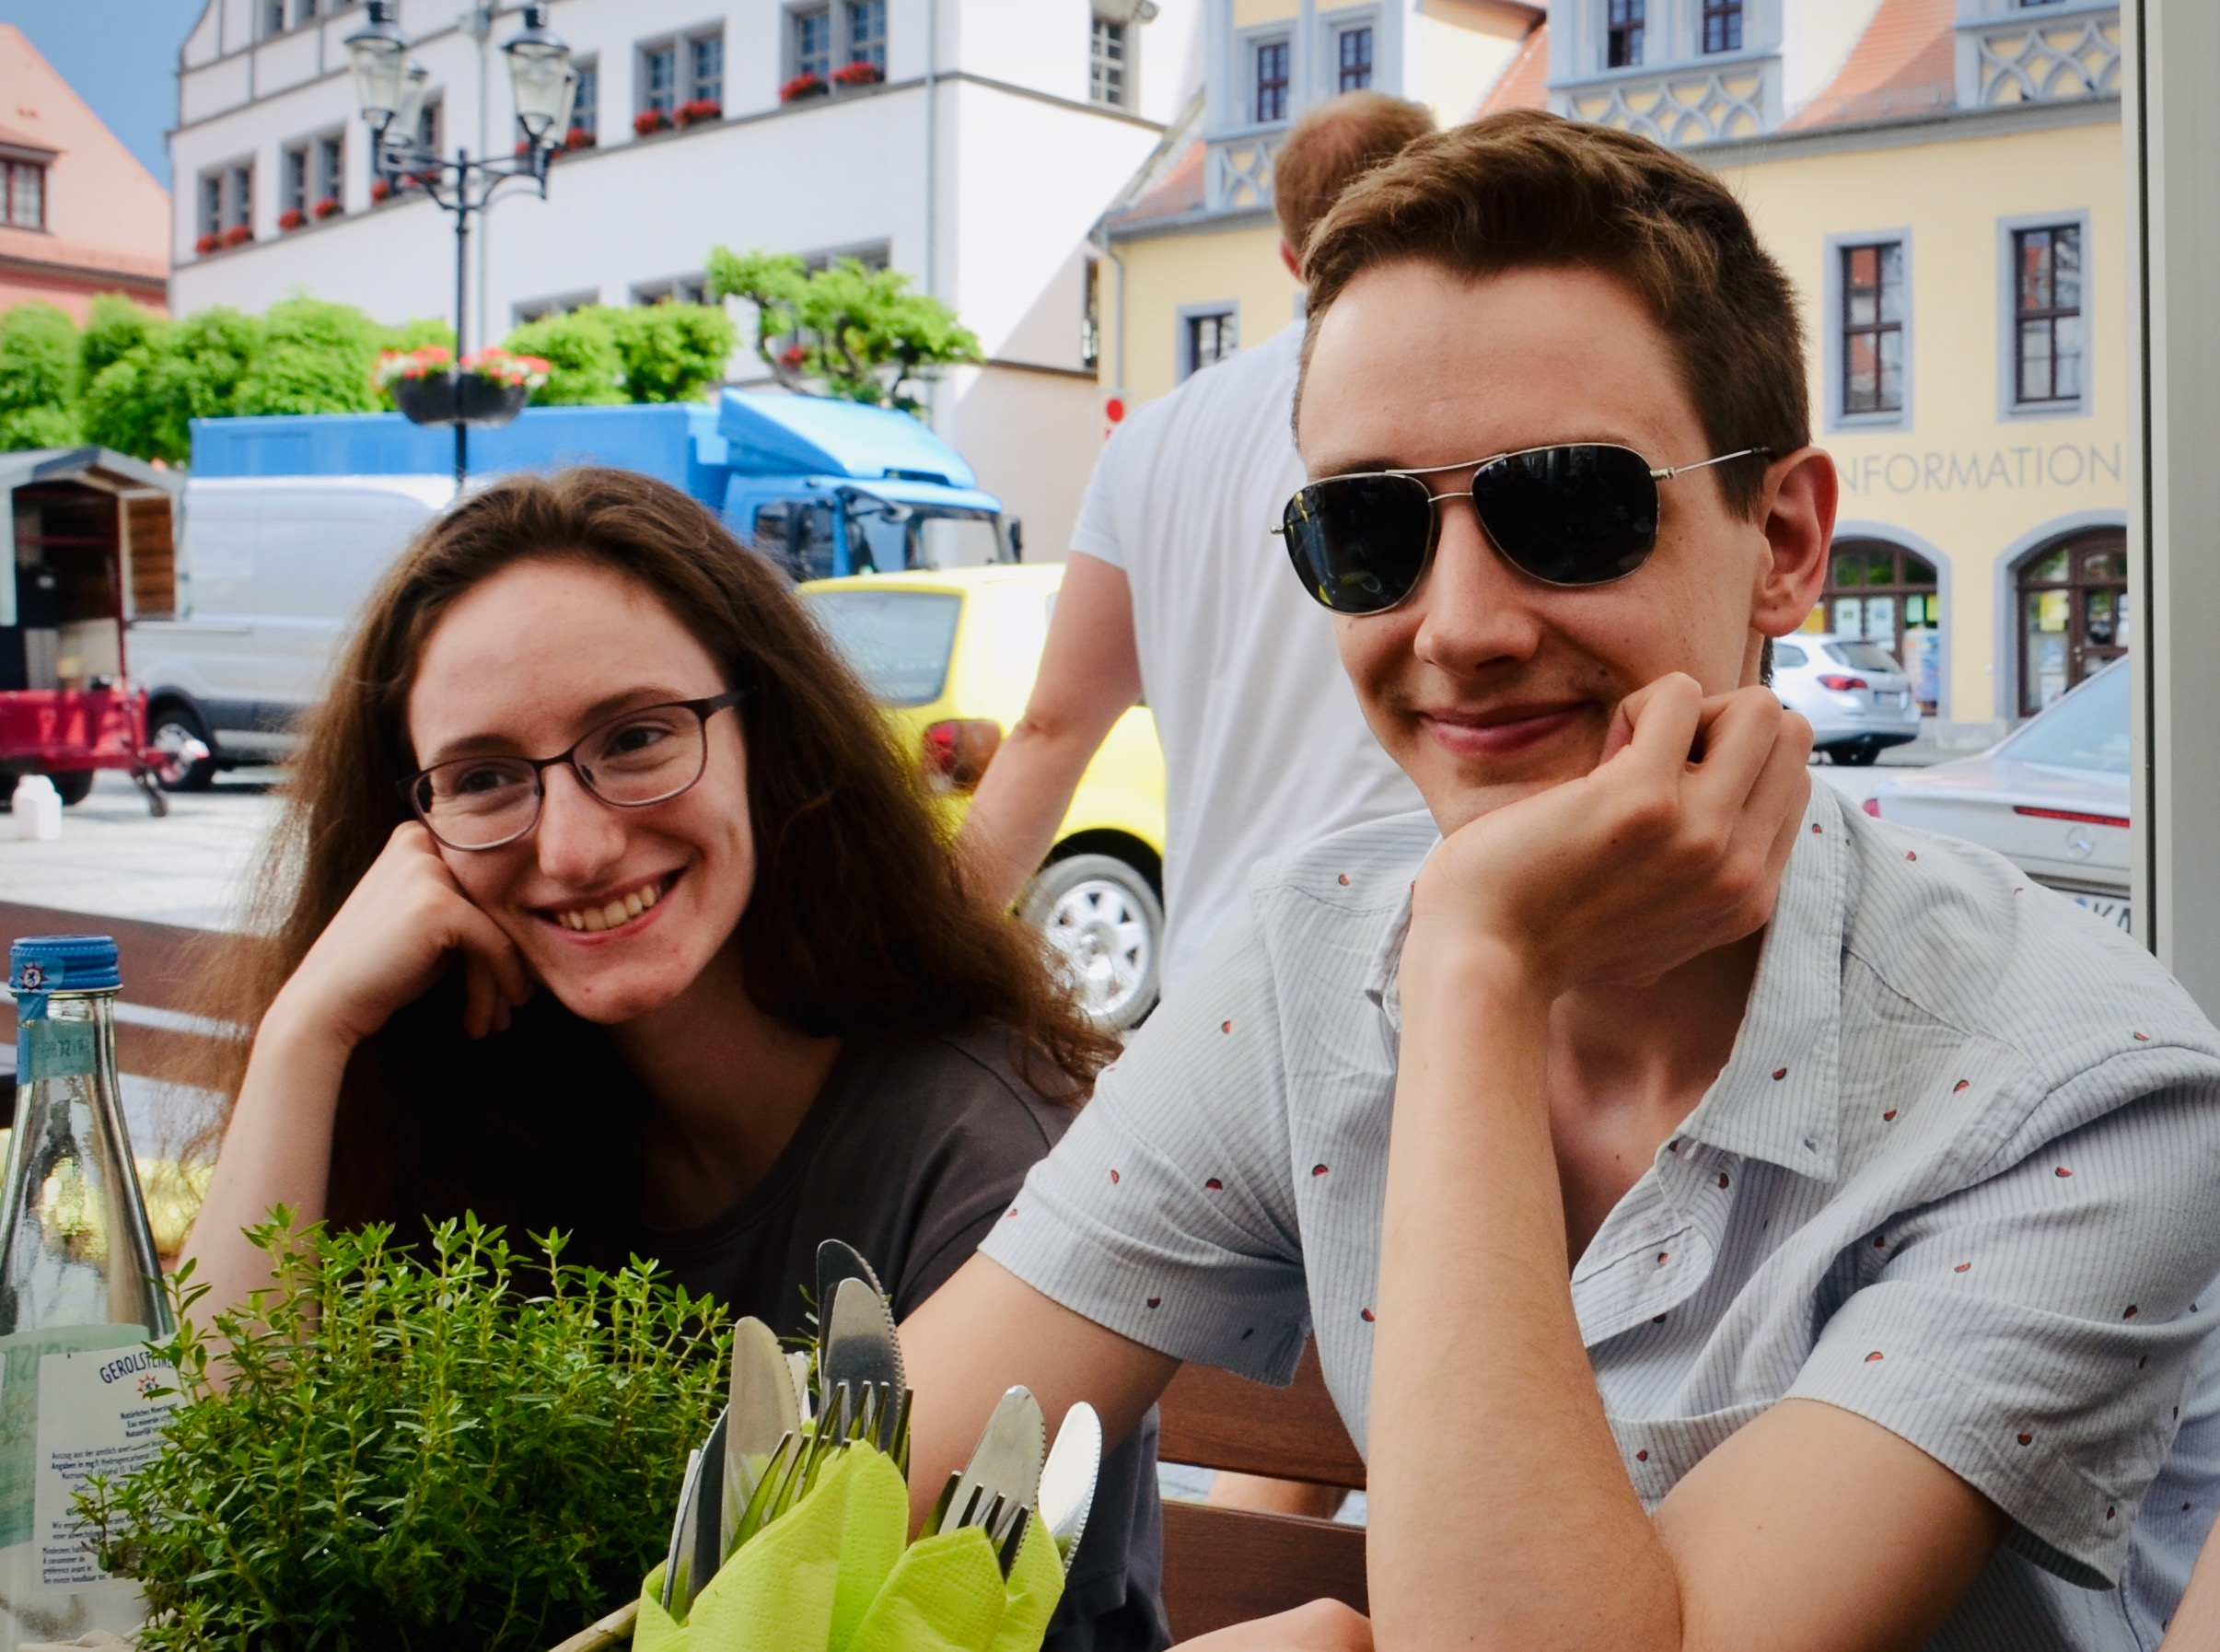 Rosemarie and Alex enjoy lunch in the market square, Naumburg, Germany.